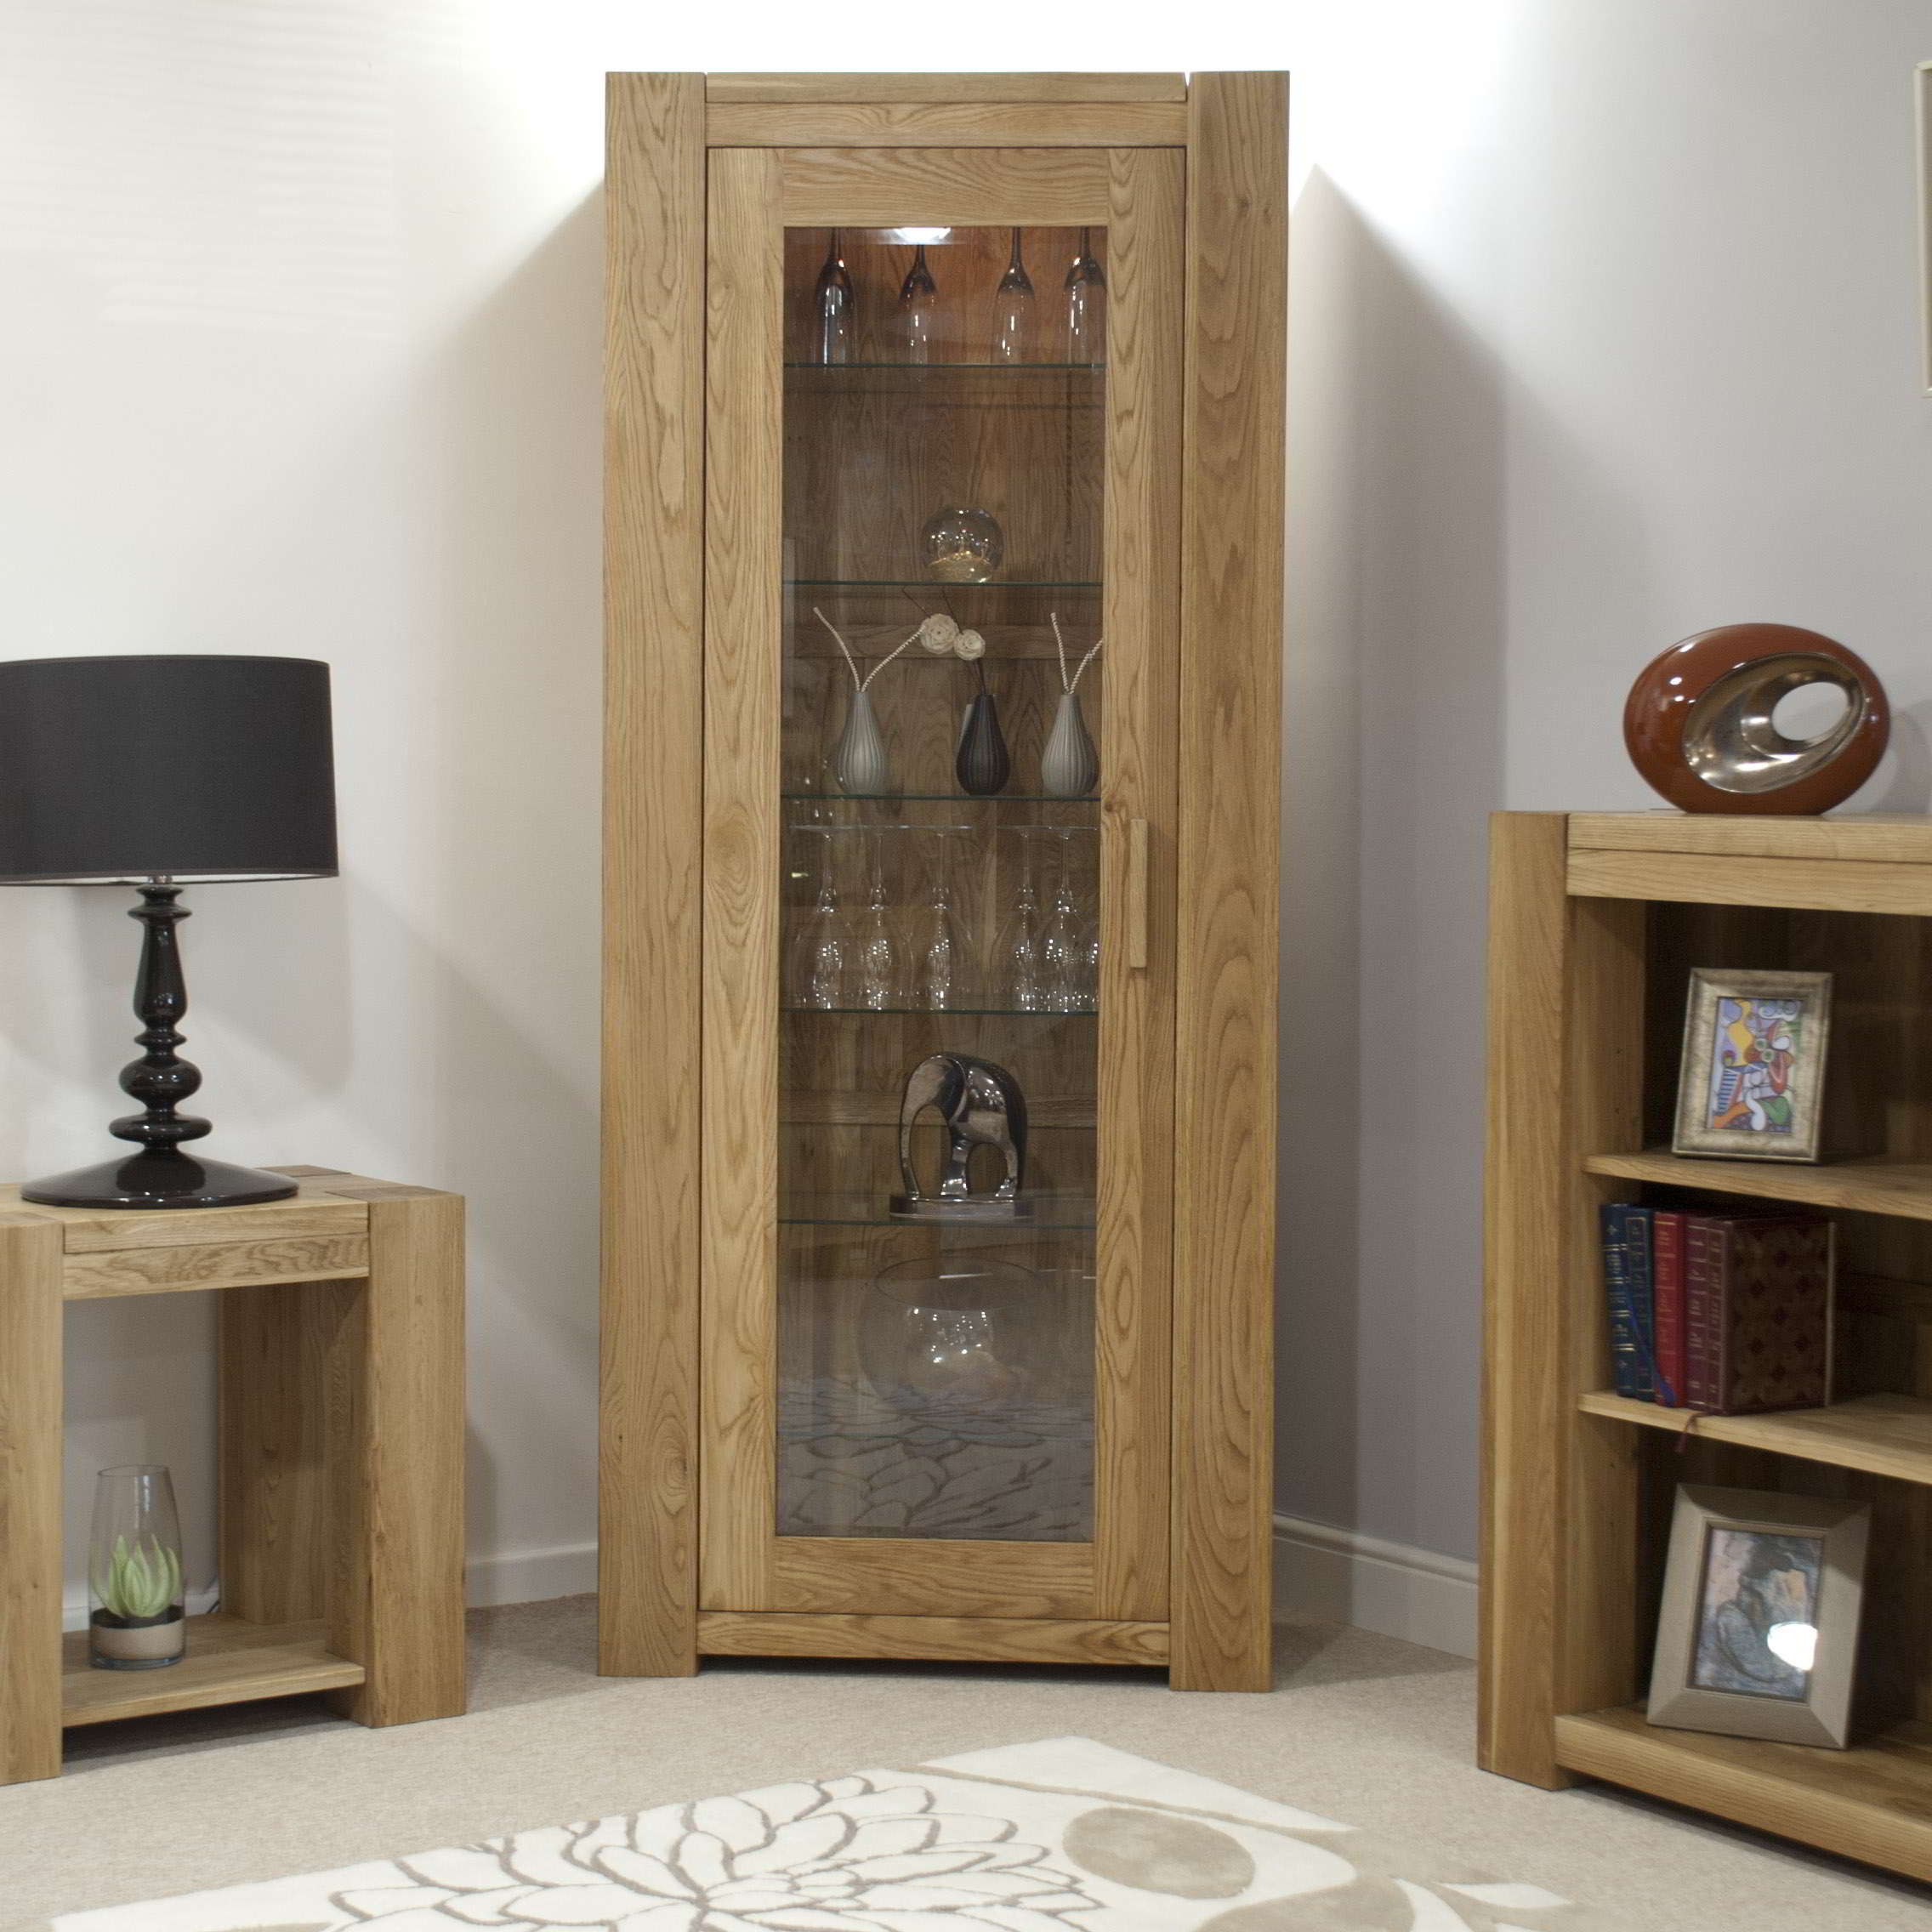 Padova Solid Oak Furniture Glazed Door Bookcase Display Cabinet Ebay